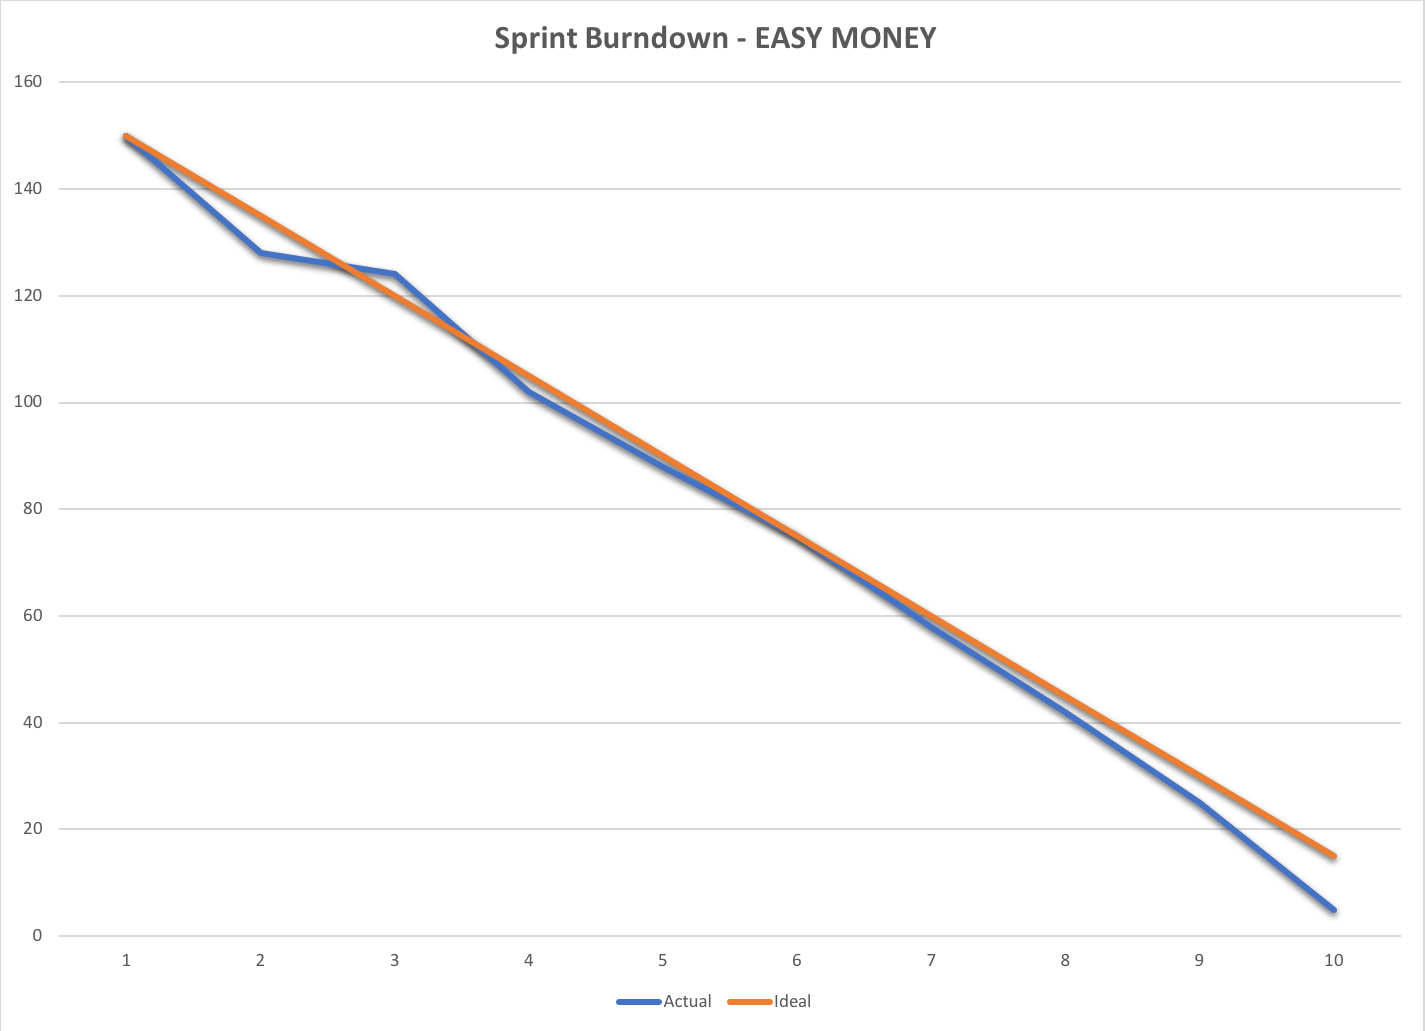 Easy Money Sprint Burn-down